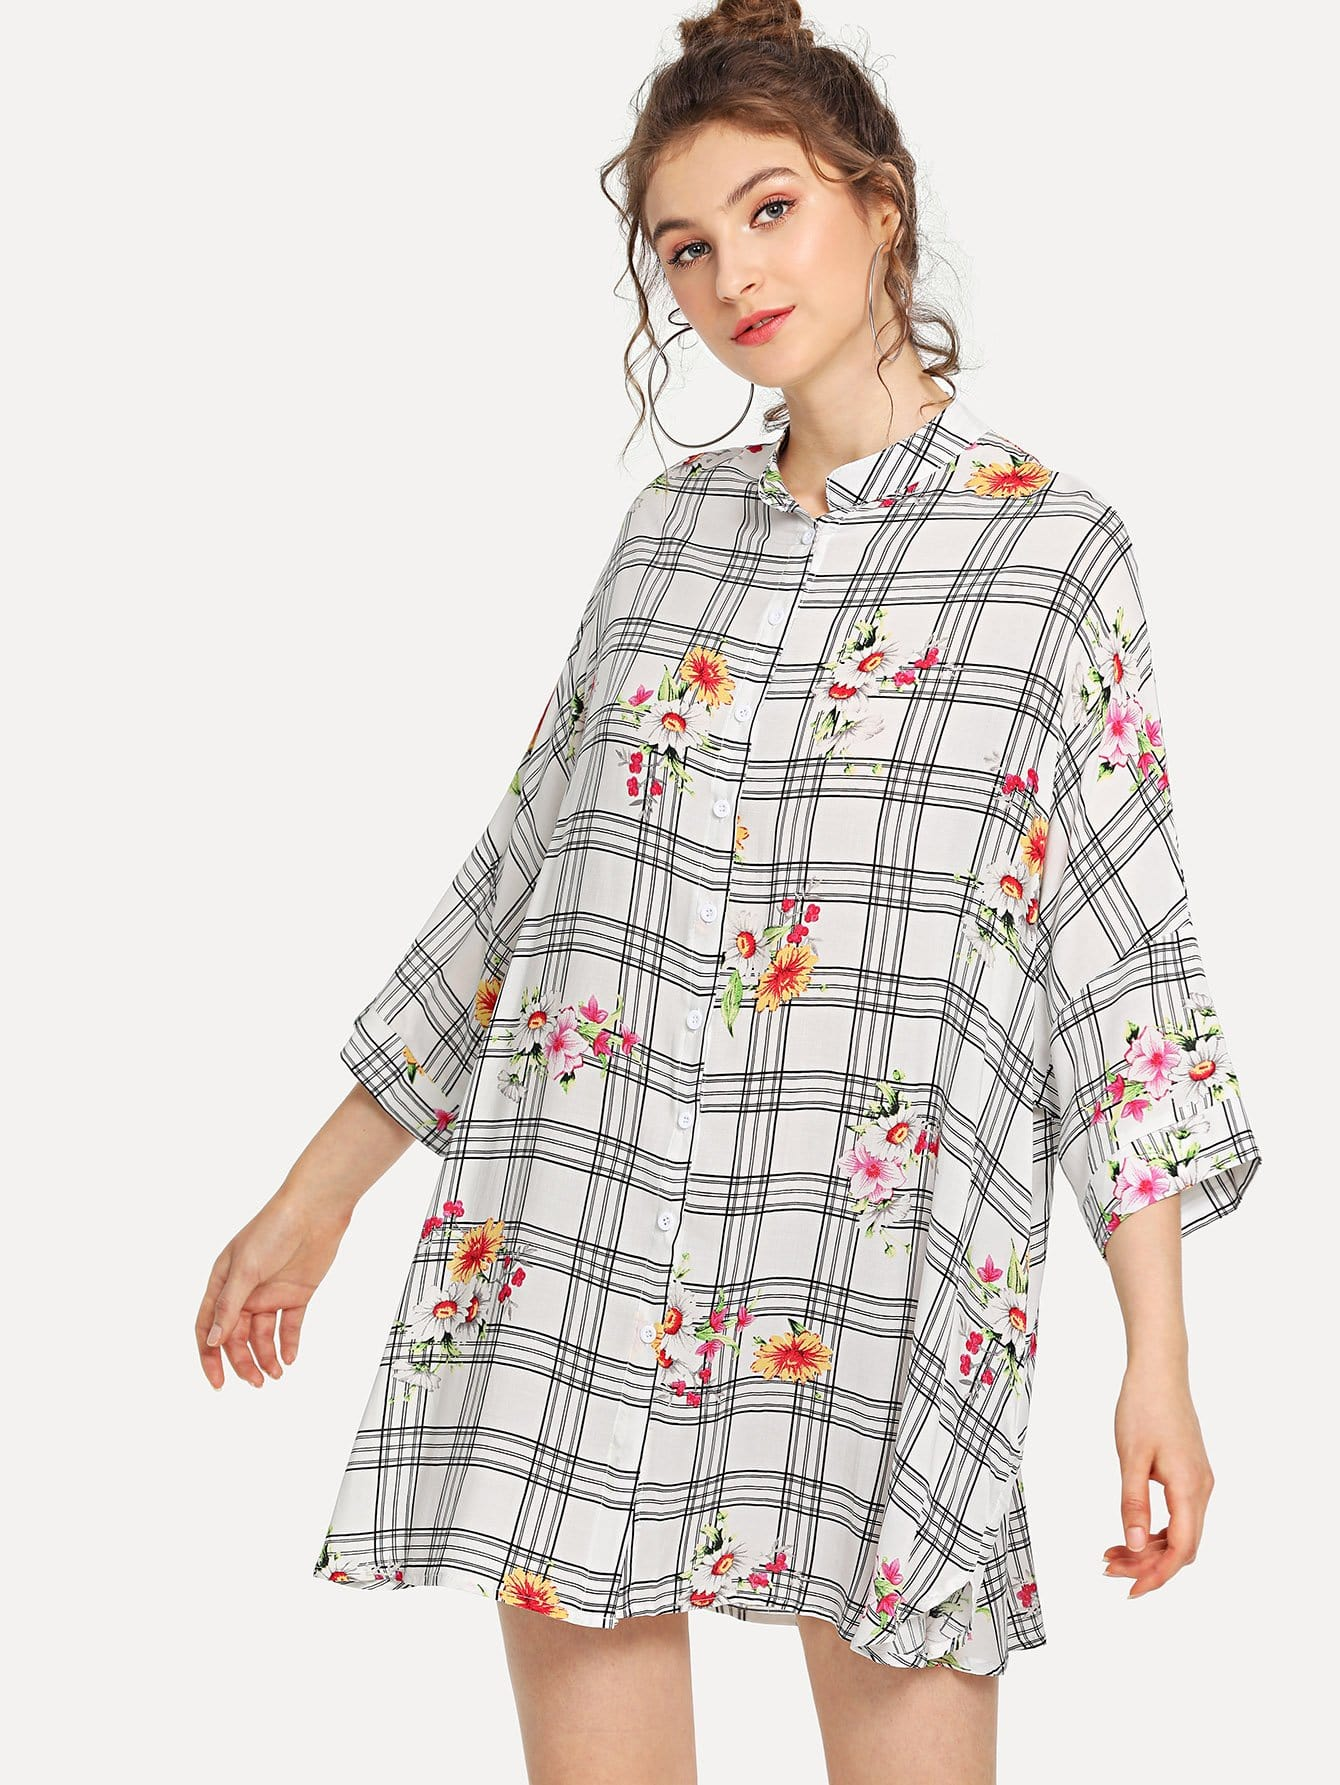 Band Collar Plaid & Floral Shirt Dress рубашка huf floral s s woven salmon floral